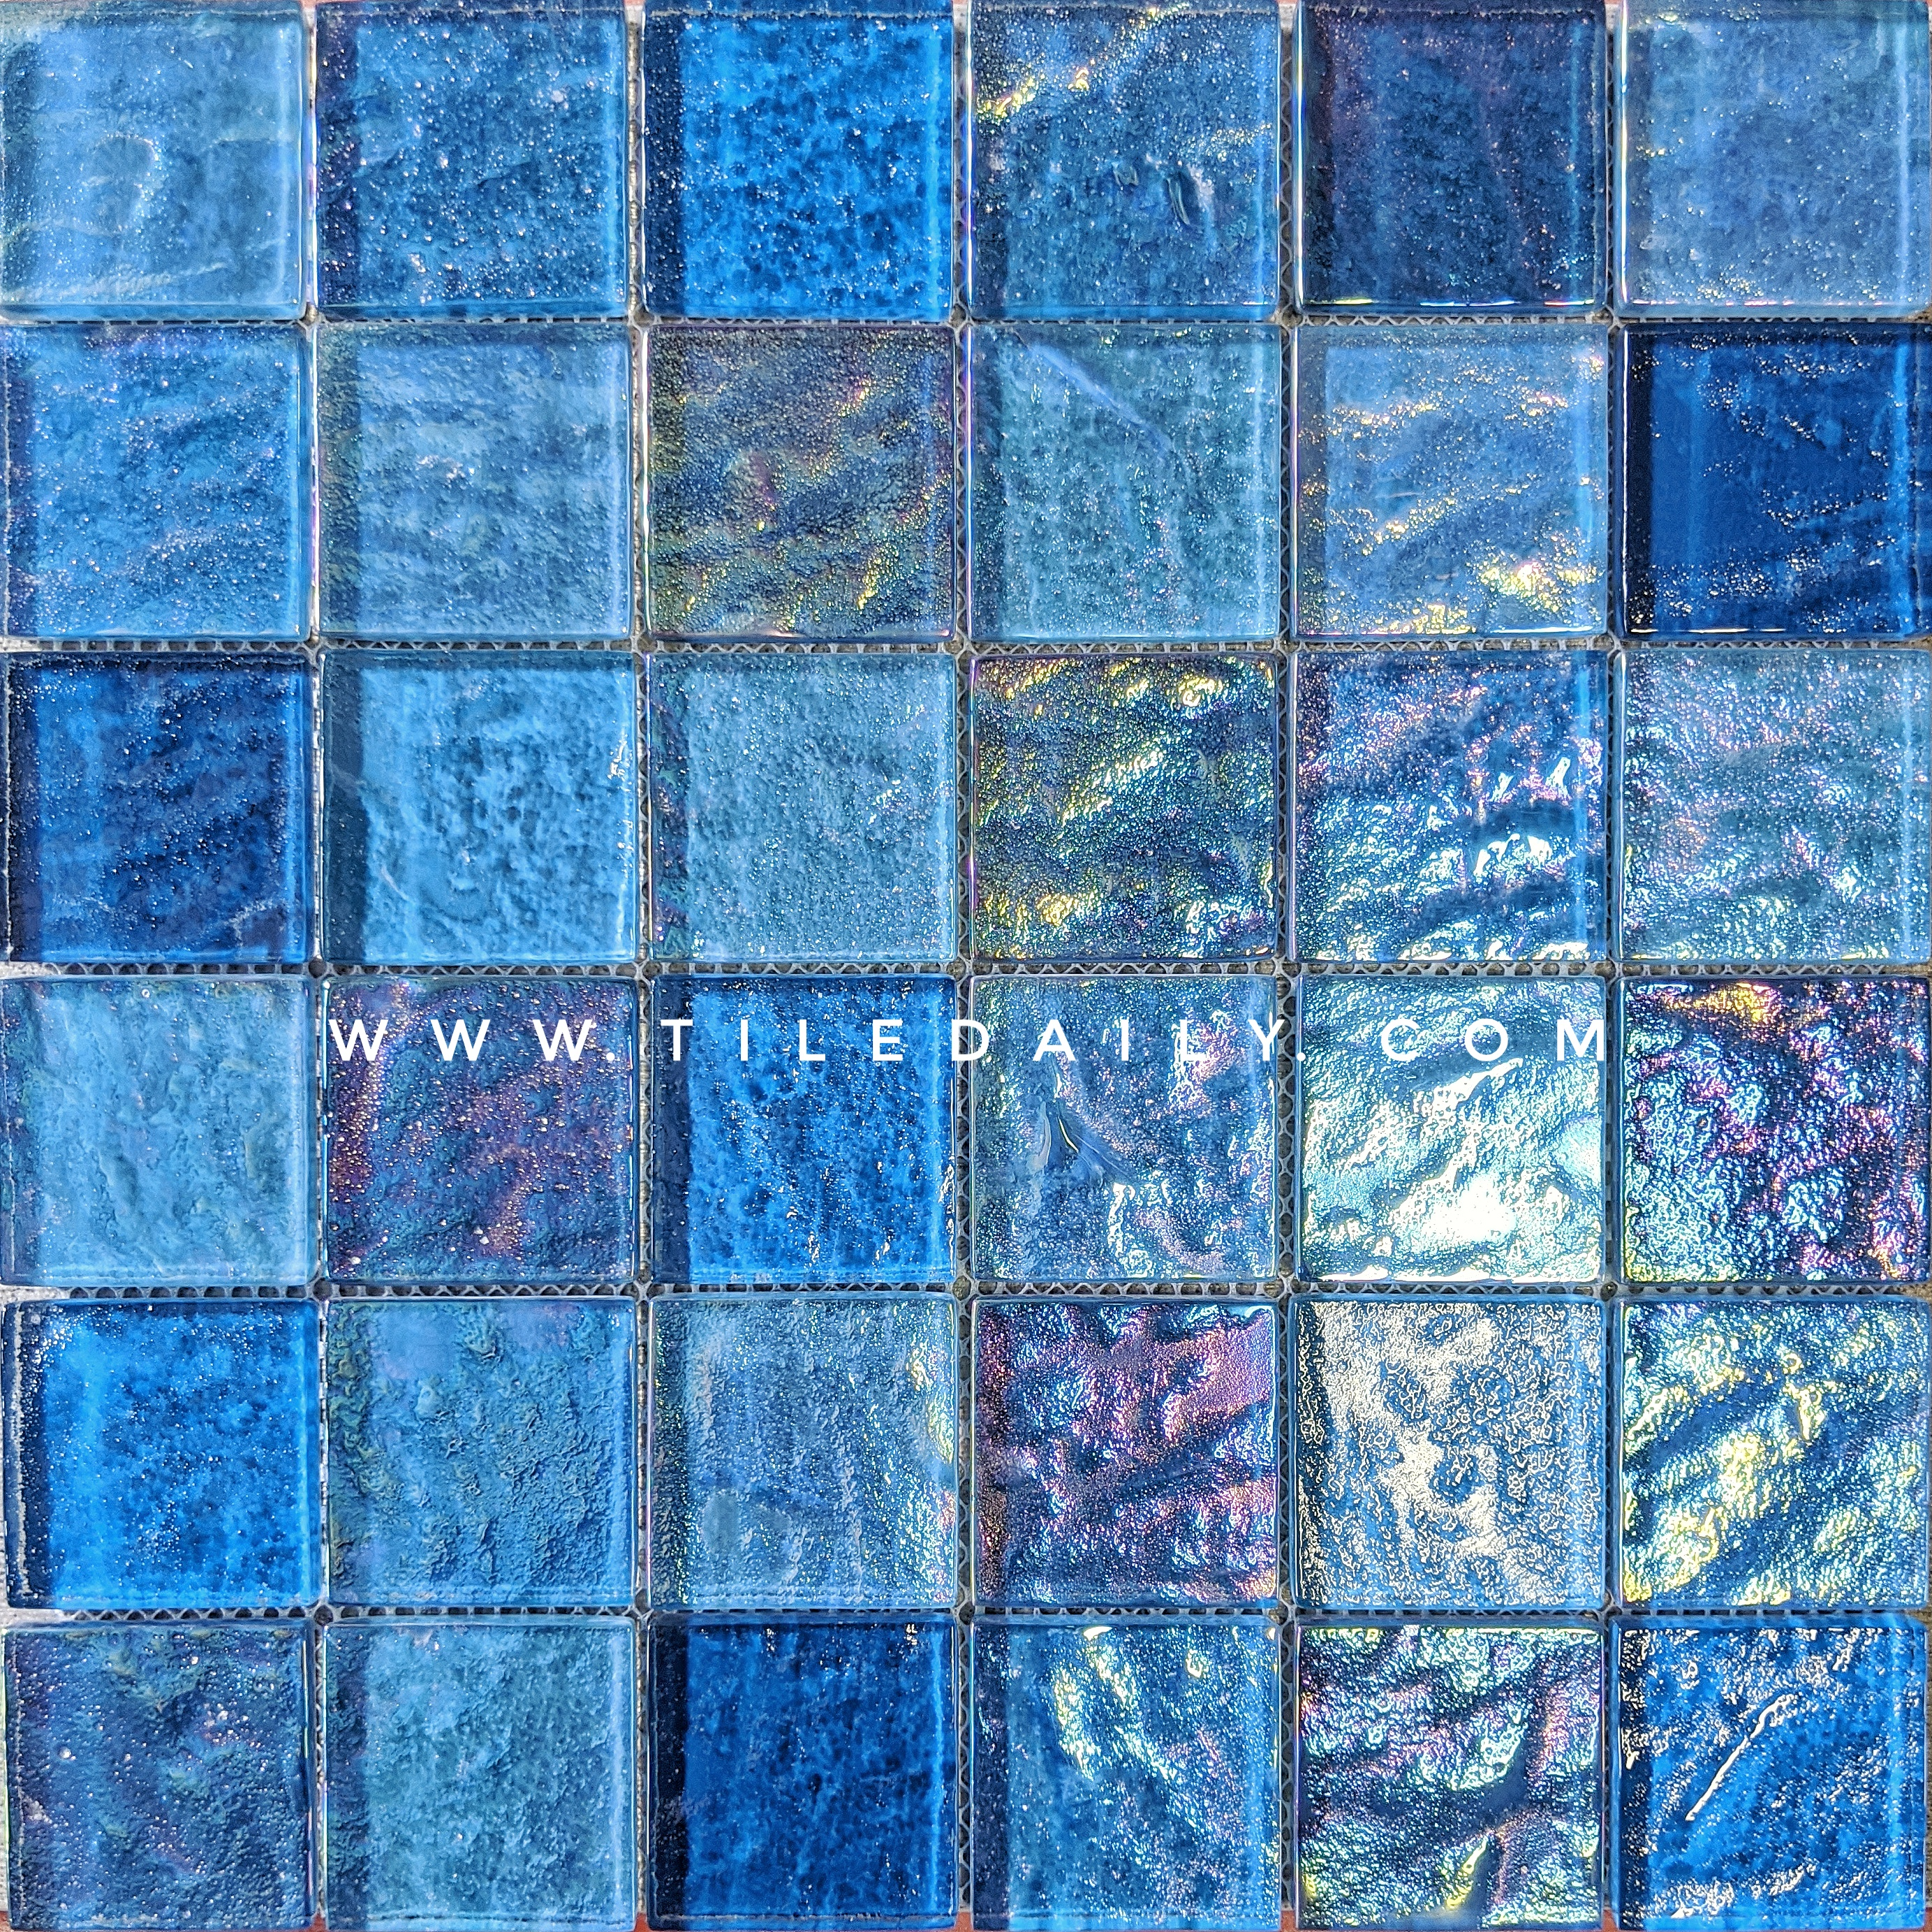 Shimmer Blue Pool Glass Mosaic tile from TileDaily. GM0160BE